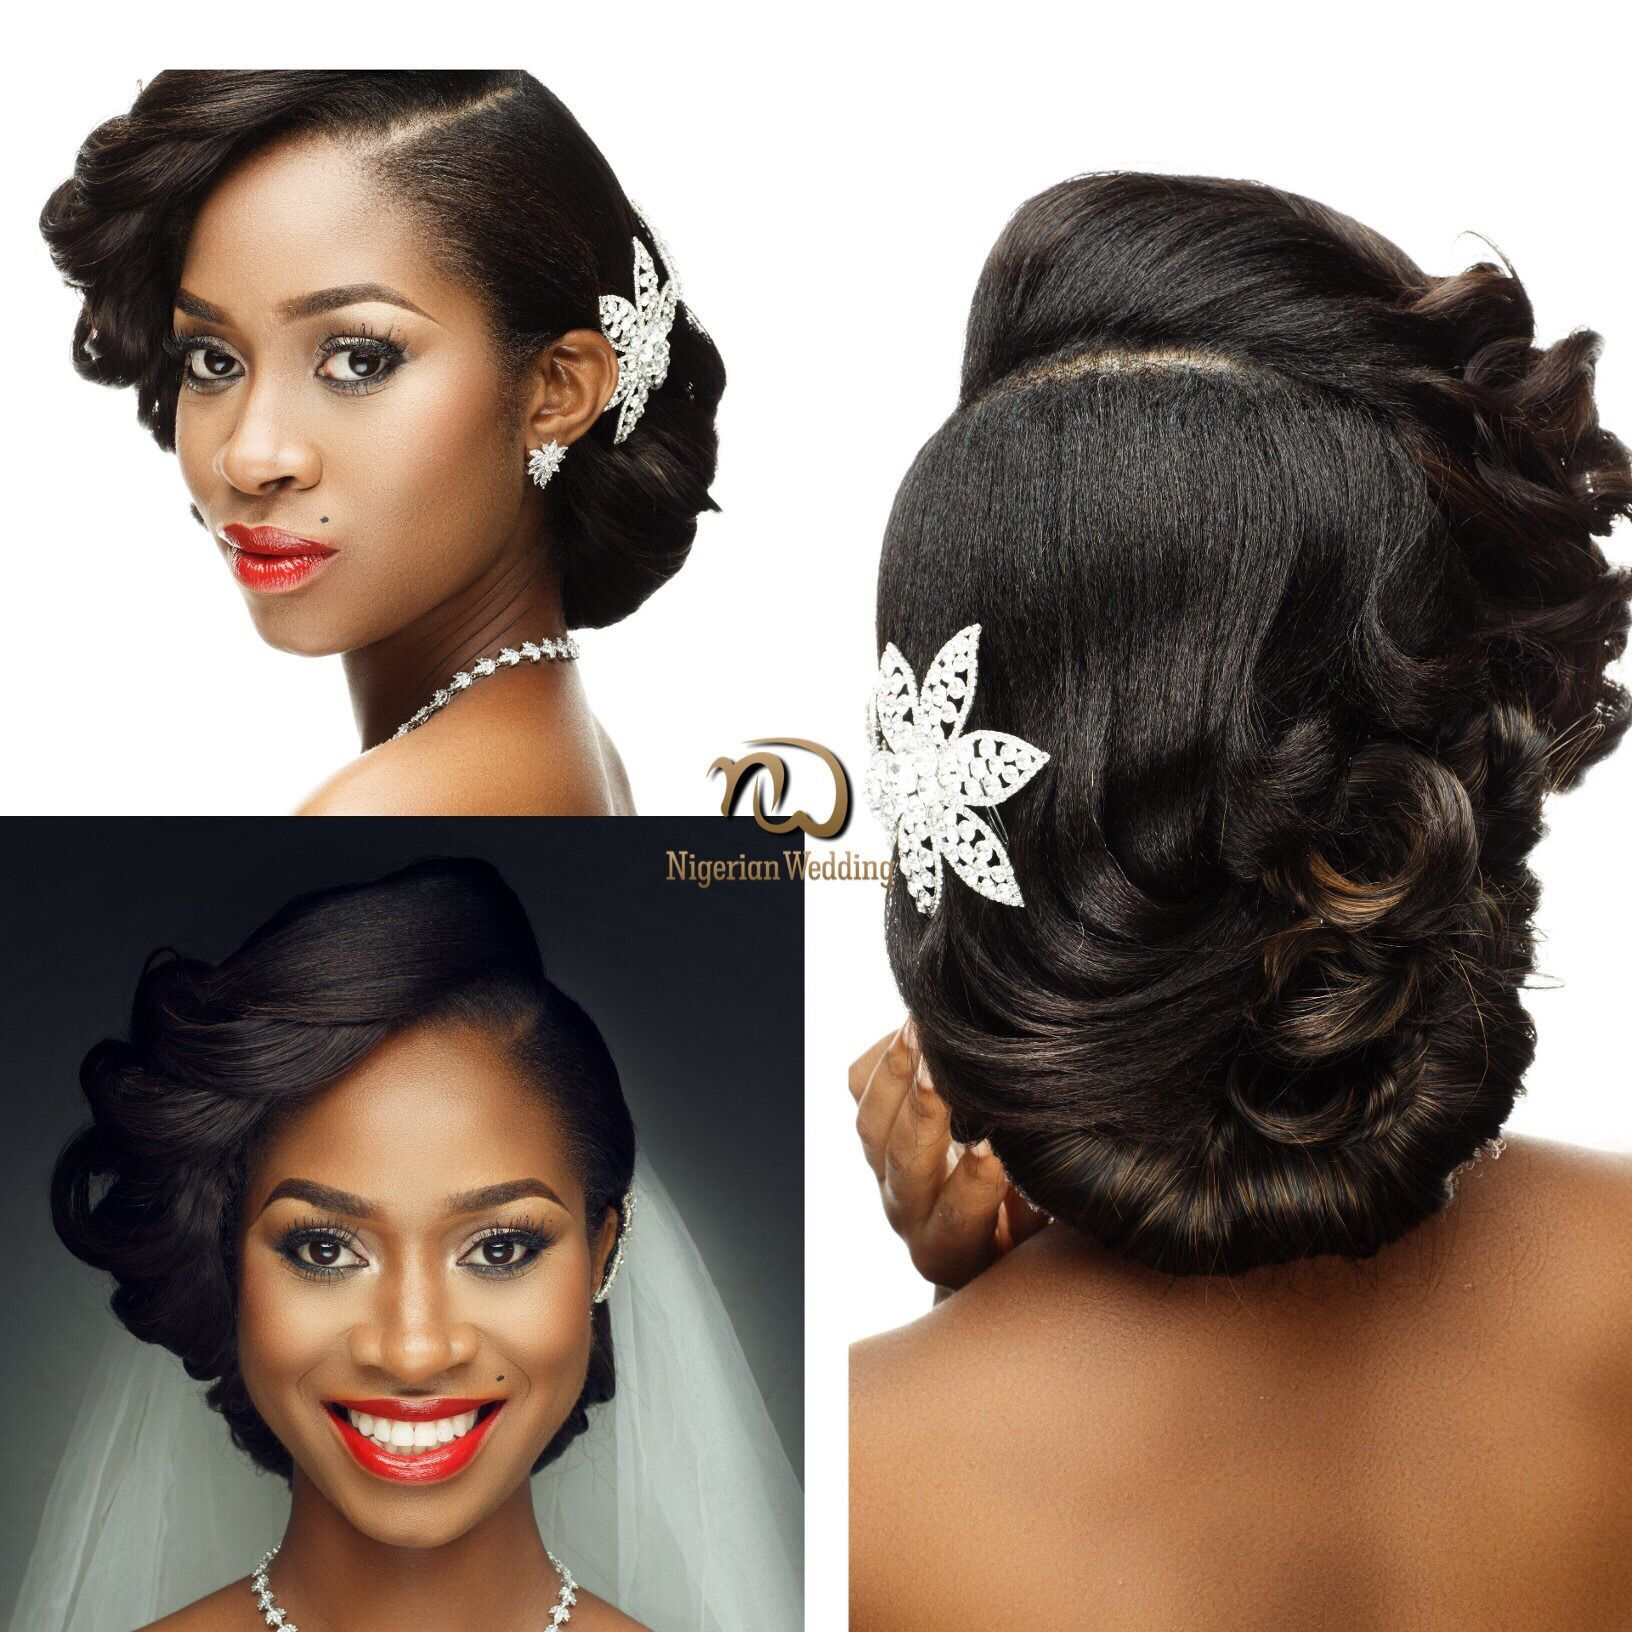 Account Suspended African Wedding Hairstyles Black Wedding Hairstyles Natural Wedding Hairstyles